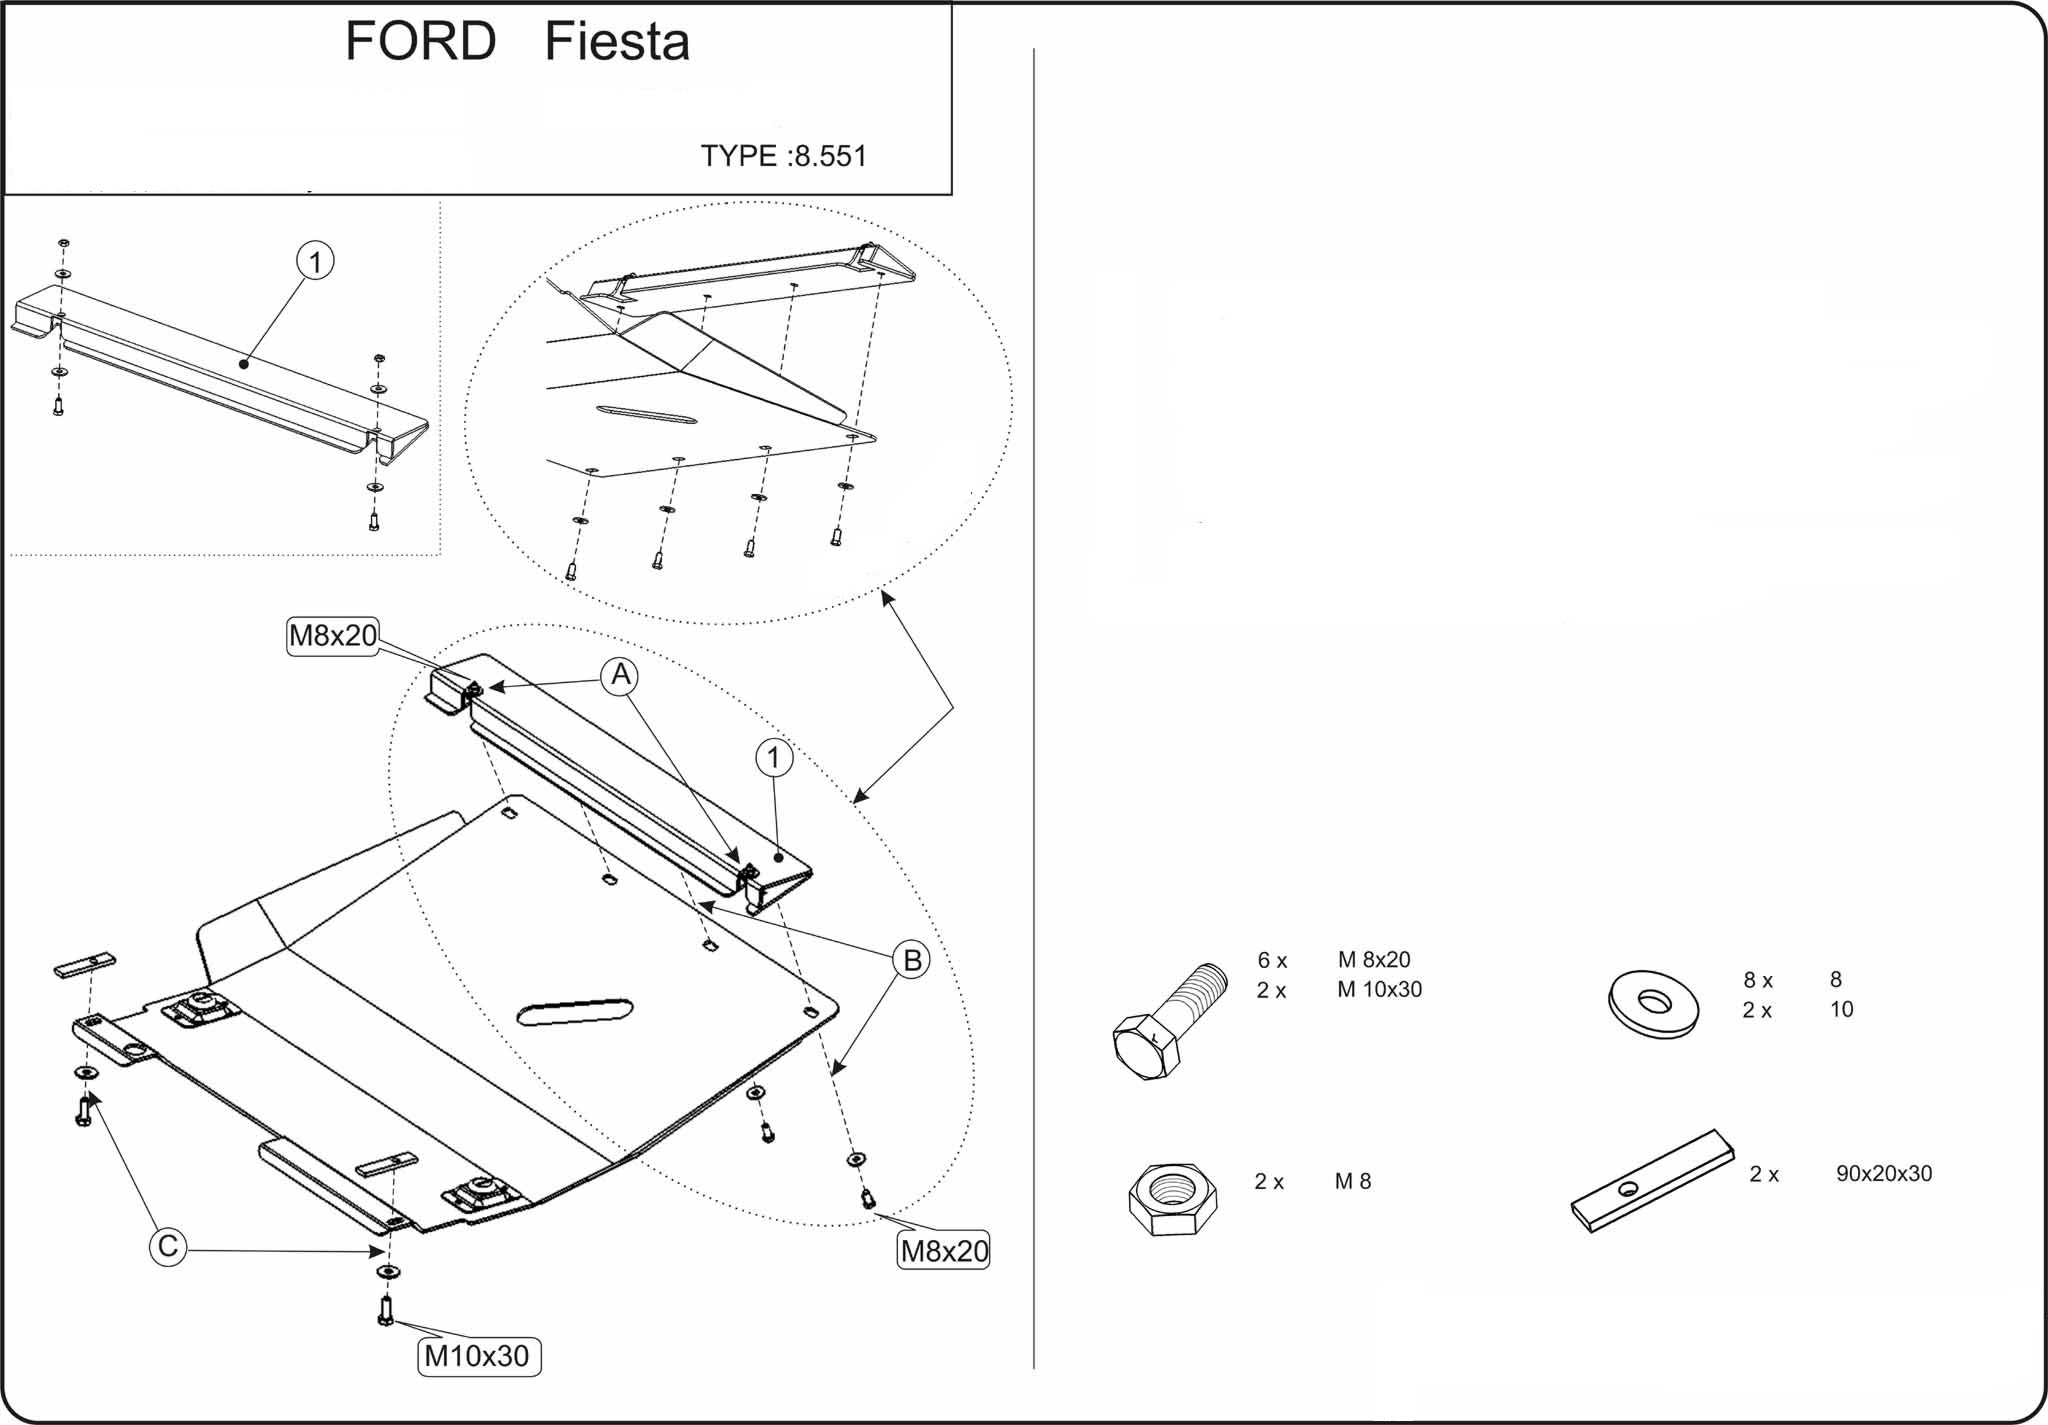 tags: #1996 ford explorer 4x4 transmission#1996 ford explorer manual  transmission#2002 ford explorer transmission diagram#1996 ford explorer  transmission